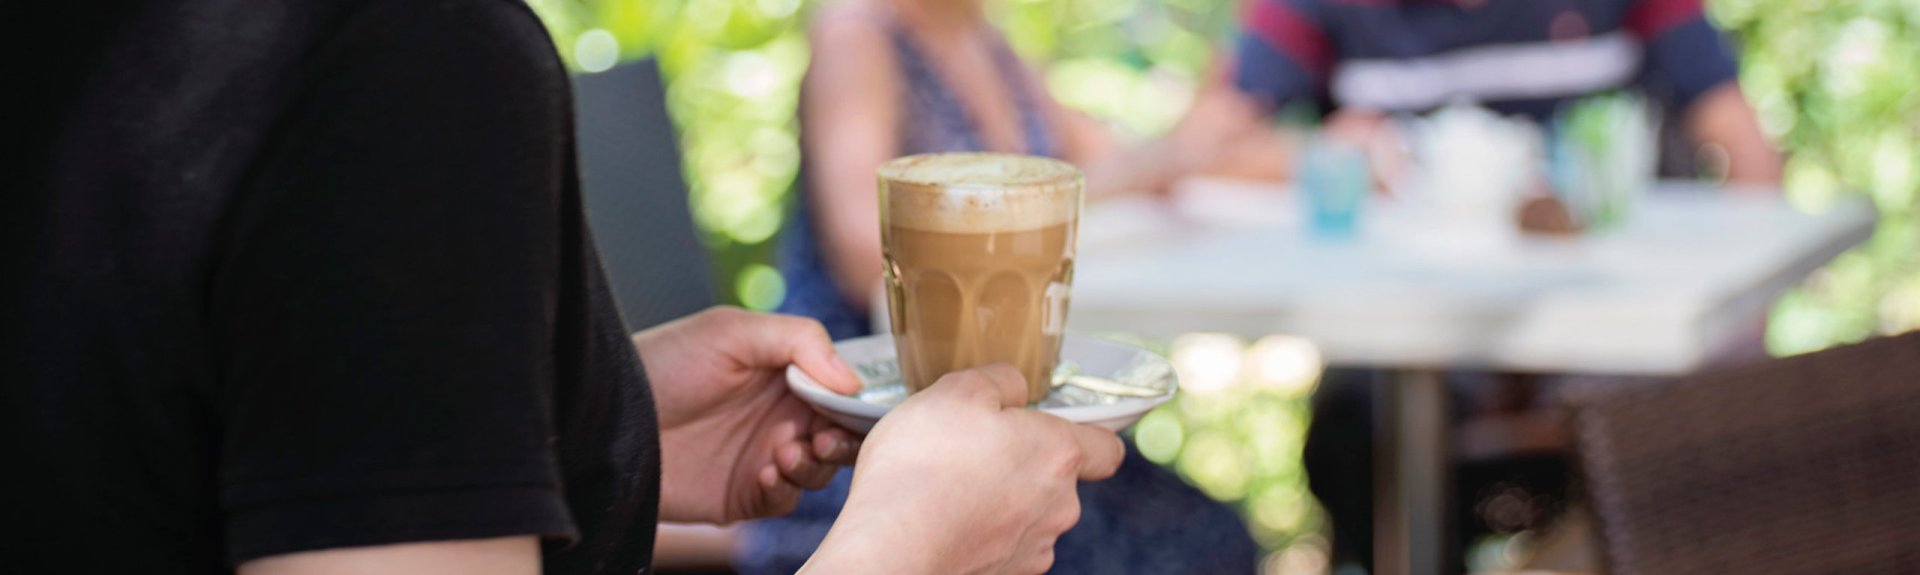 Enjoy a coffee in Kakadu. Photo by Shaana McNaught Tourism NT.